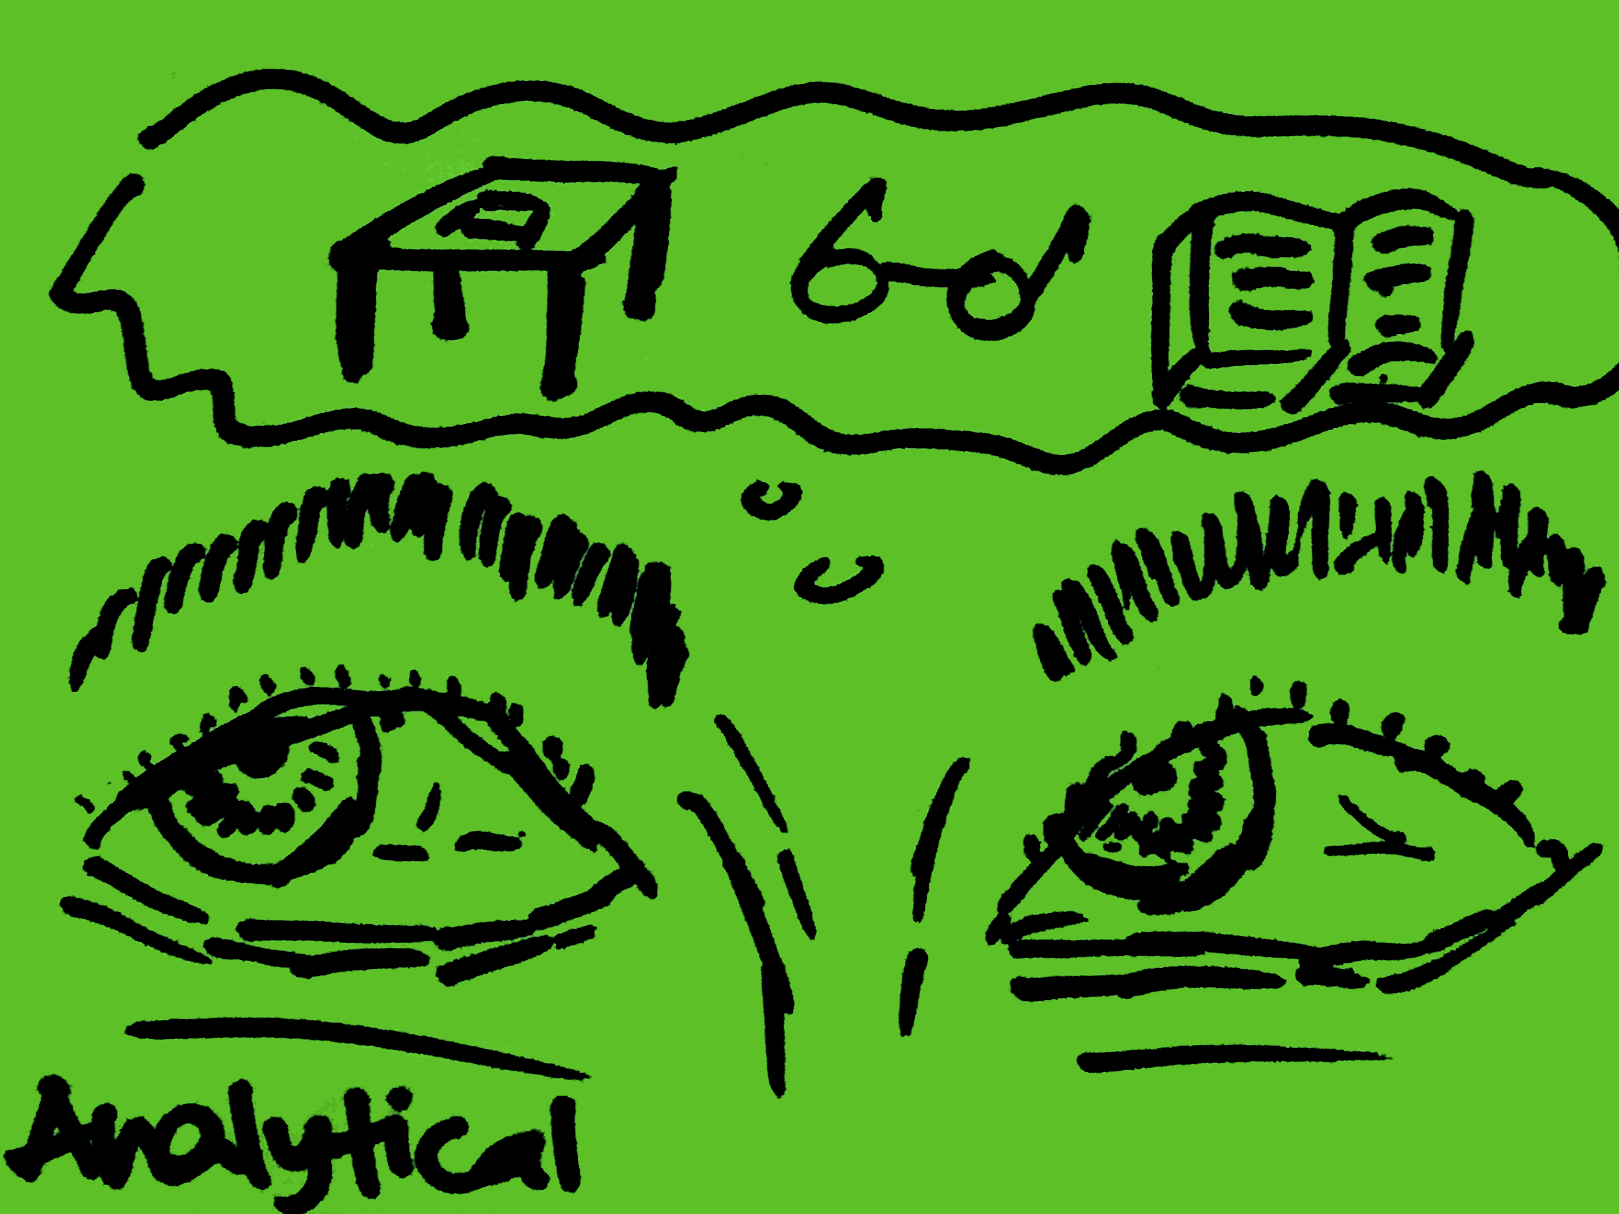 Analytical Strengthsfinder Thinkning Eyes